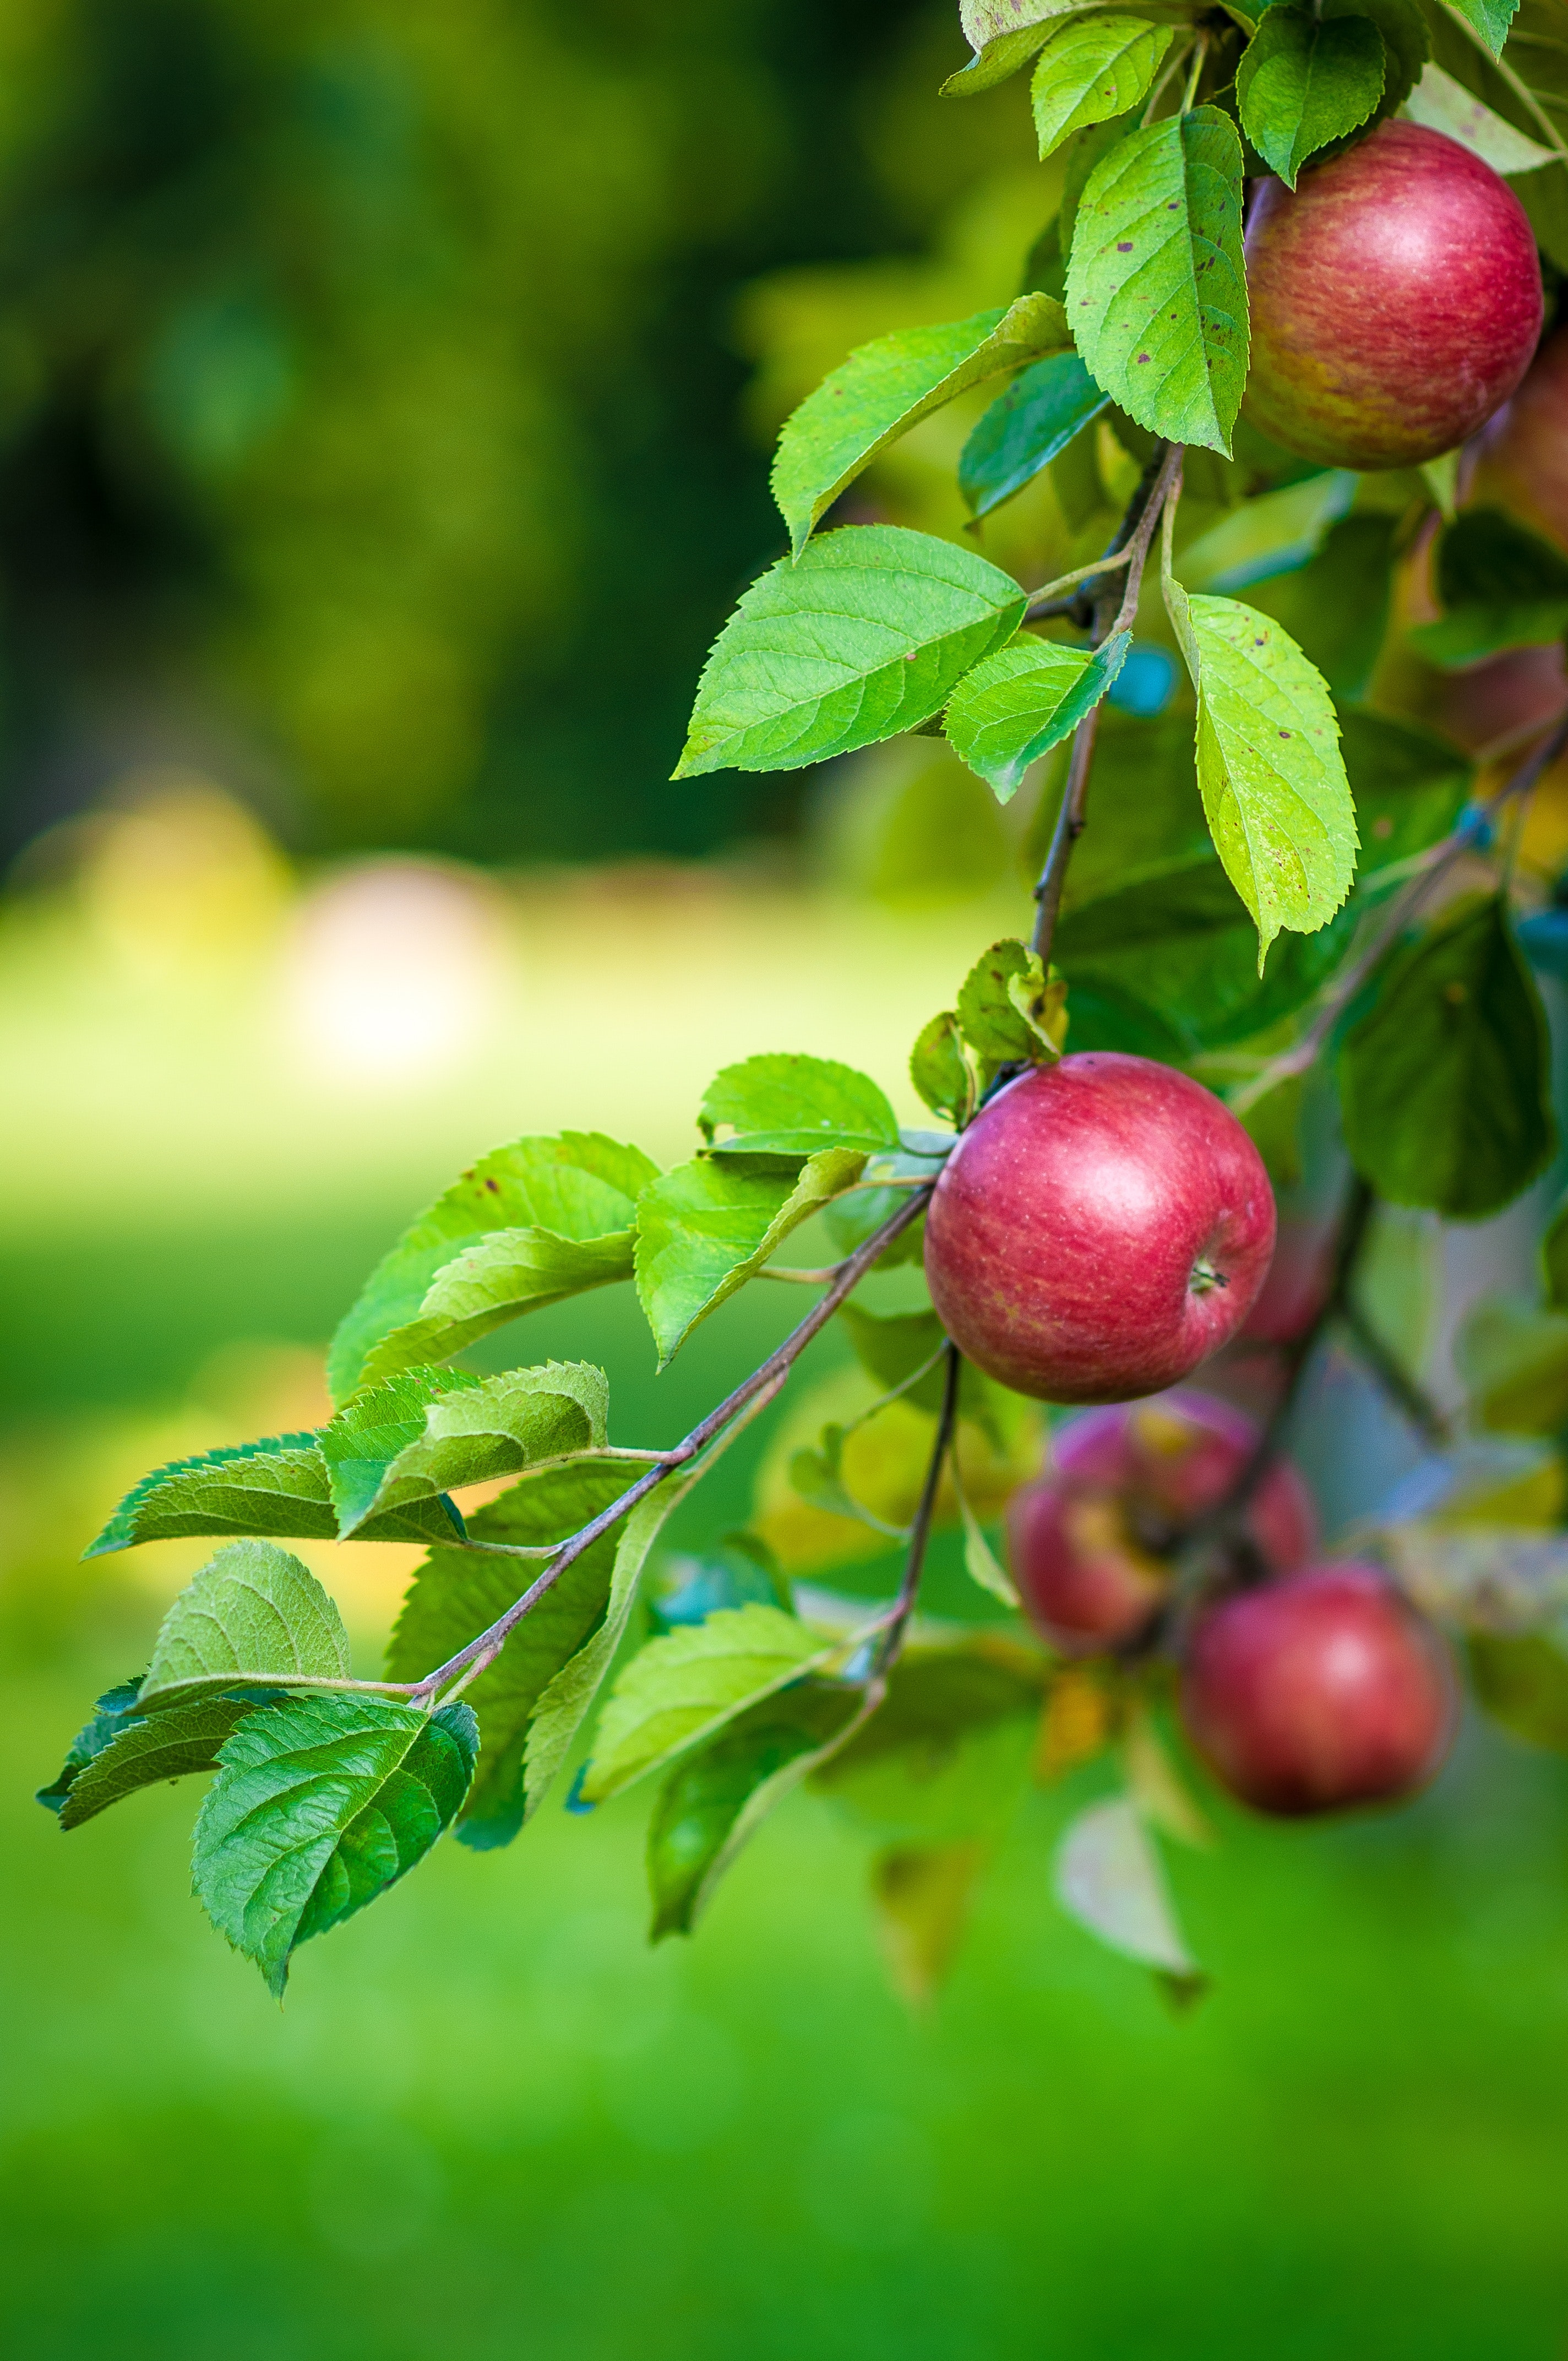 Green Leaves and Red Apple Fruit, Apples, Fruit, Leaves, Plant, HQ Photo